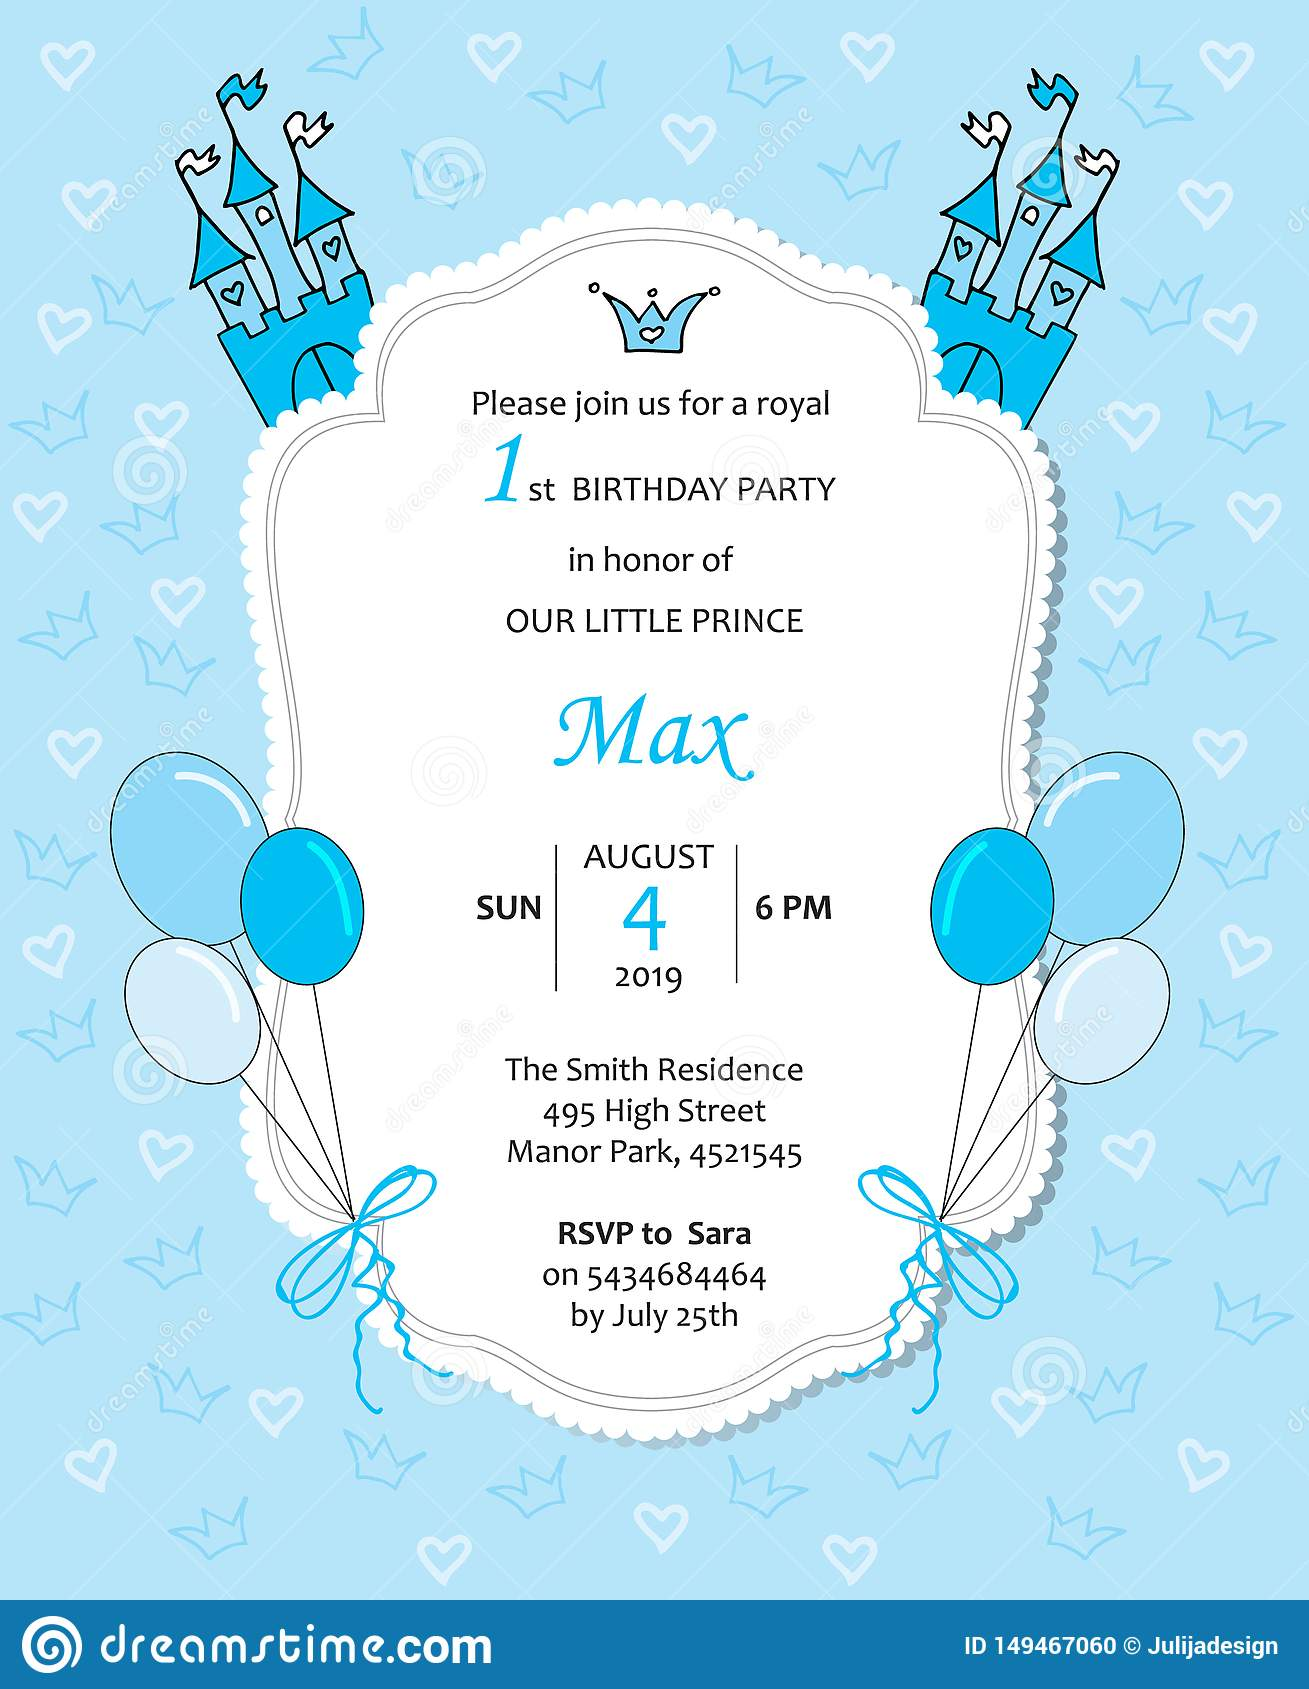 https www dreamstime com baby boy royal bithday invitaion baloons castle hearts crowns little prince template card lace frame blue image149467060